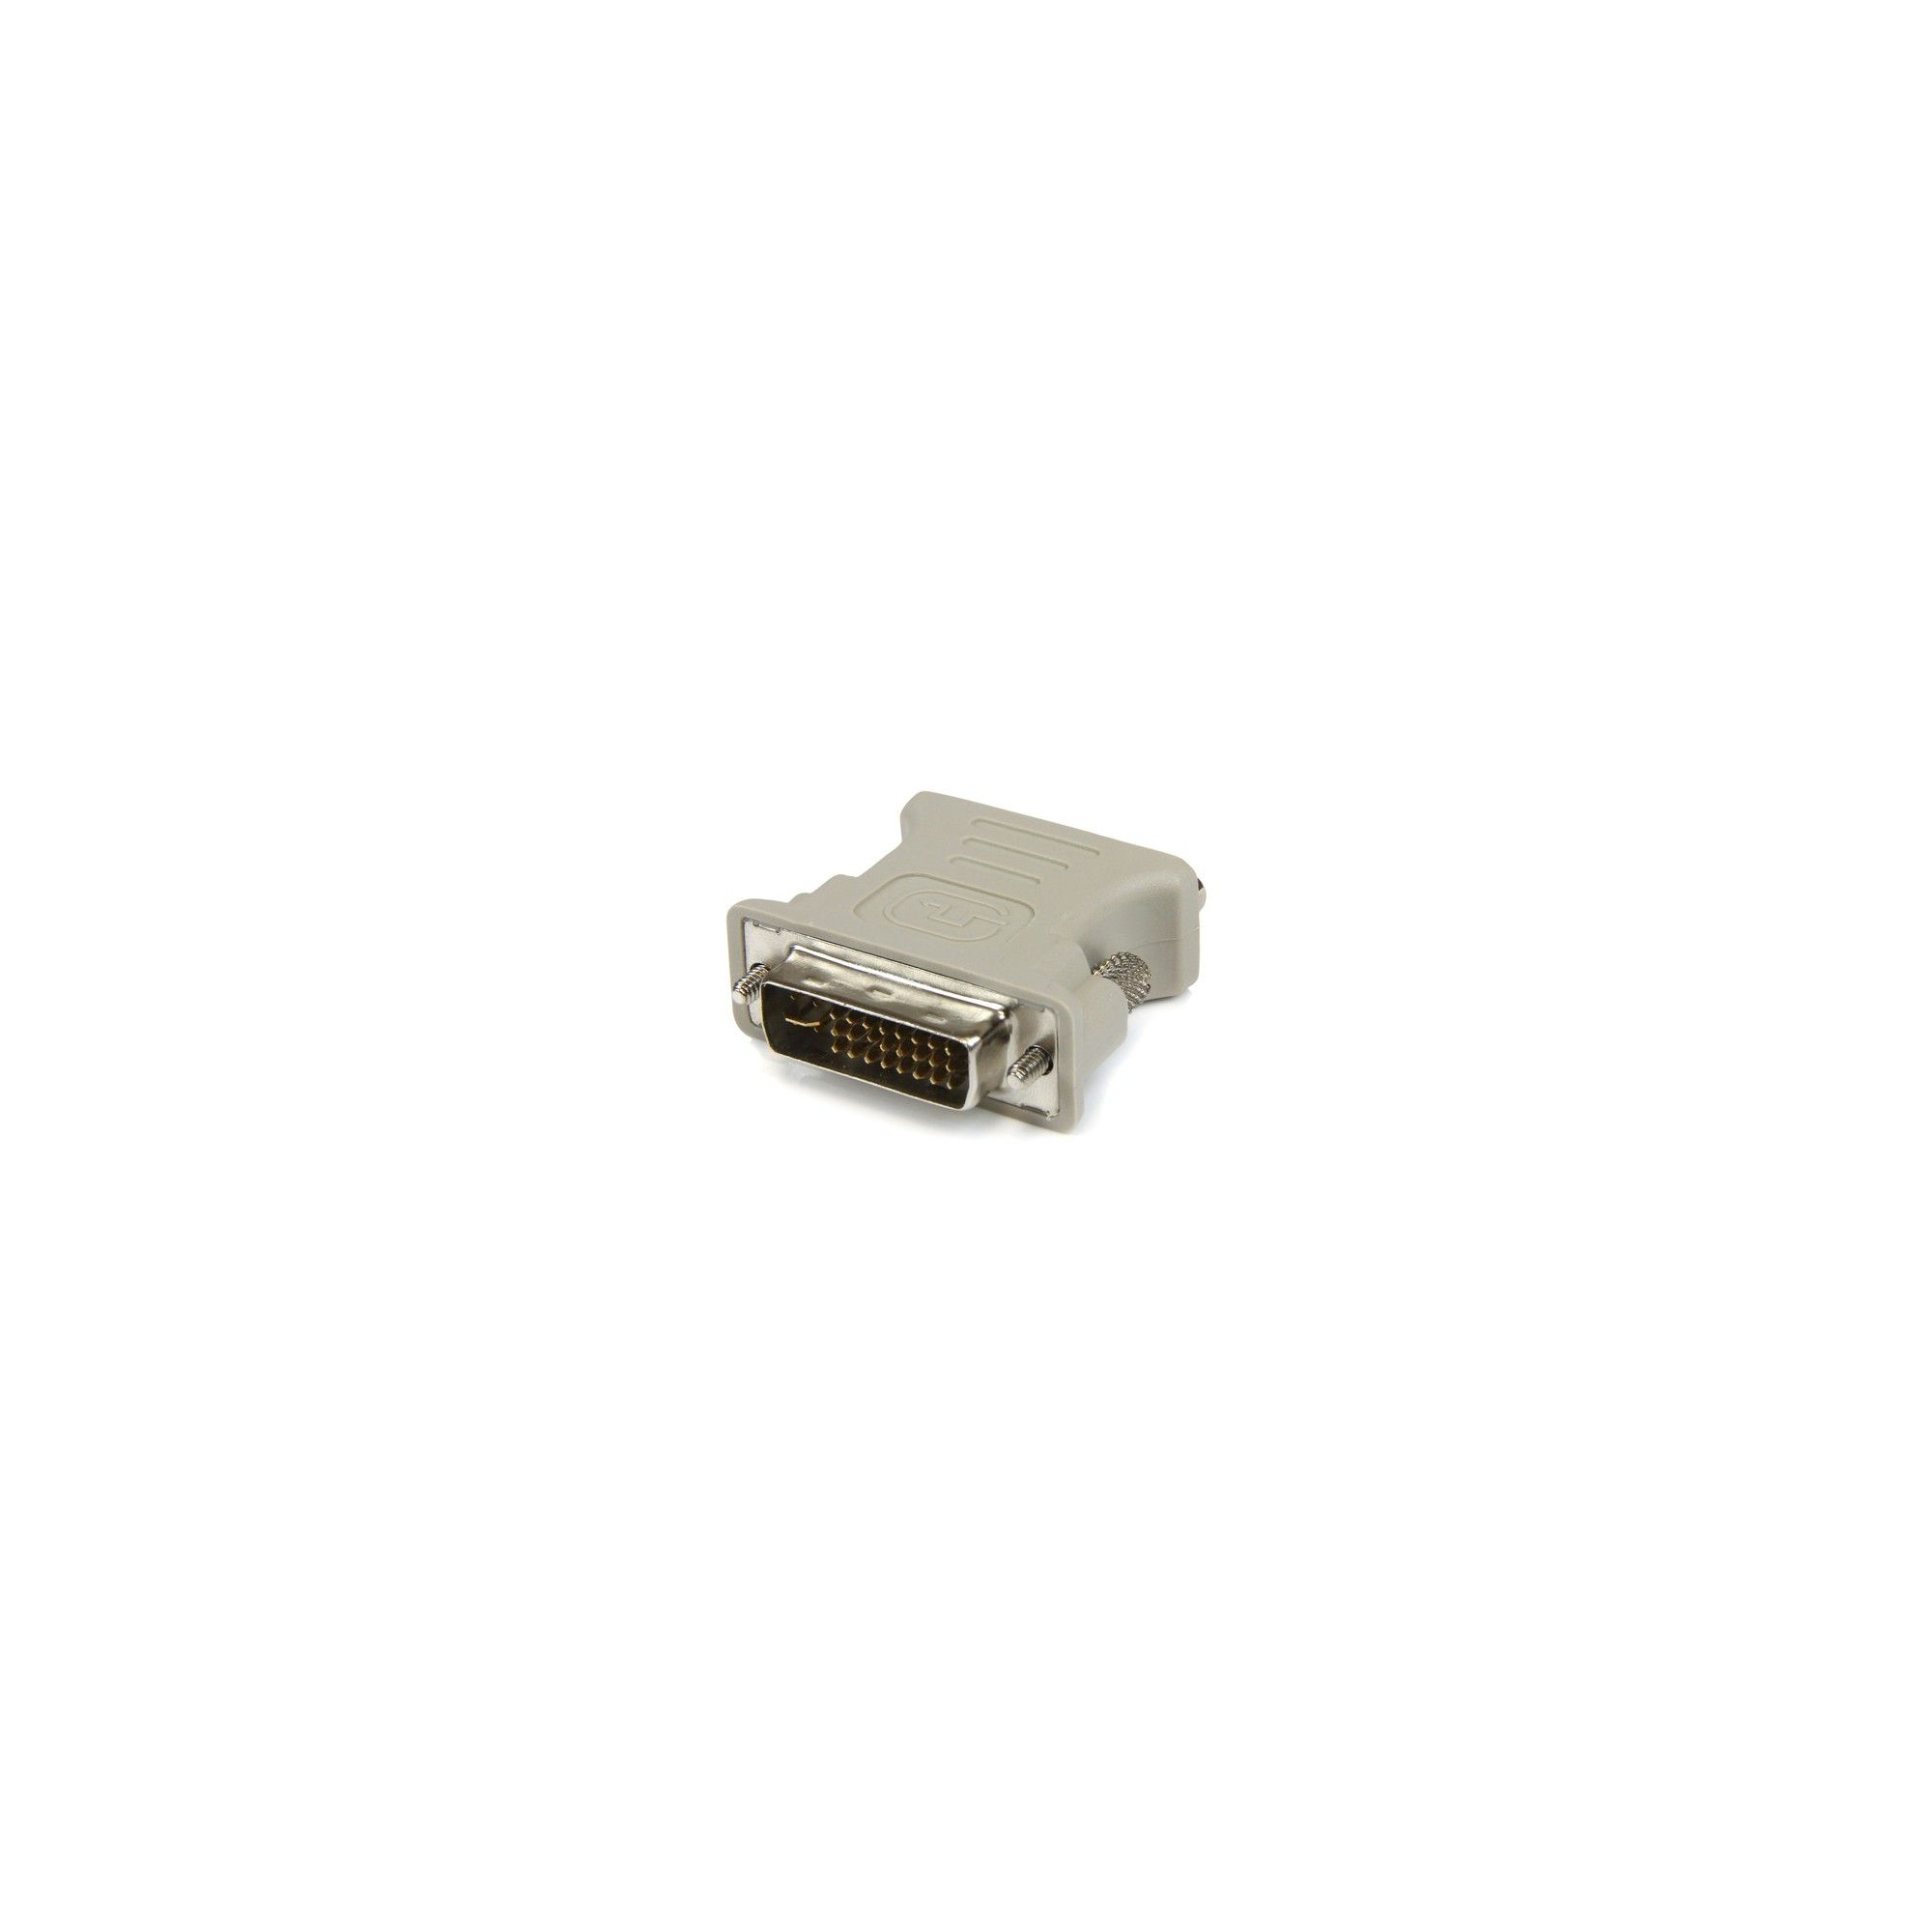 DVI-I to VGA StarTech.com DVI to VGA Cable Adapter M//Fr Pack of 10 DVI Male to VGA Female Adapter Pack of 10 DVI to VGA Adapter Beige